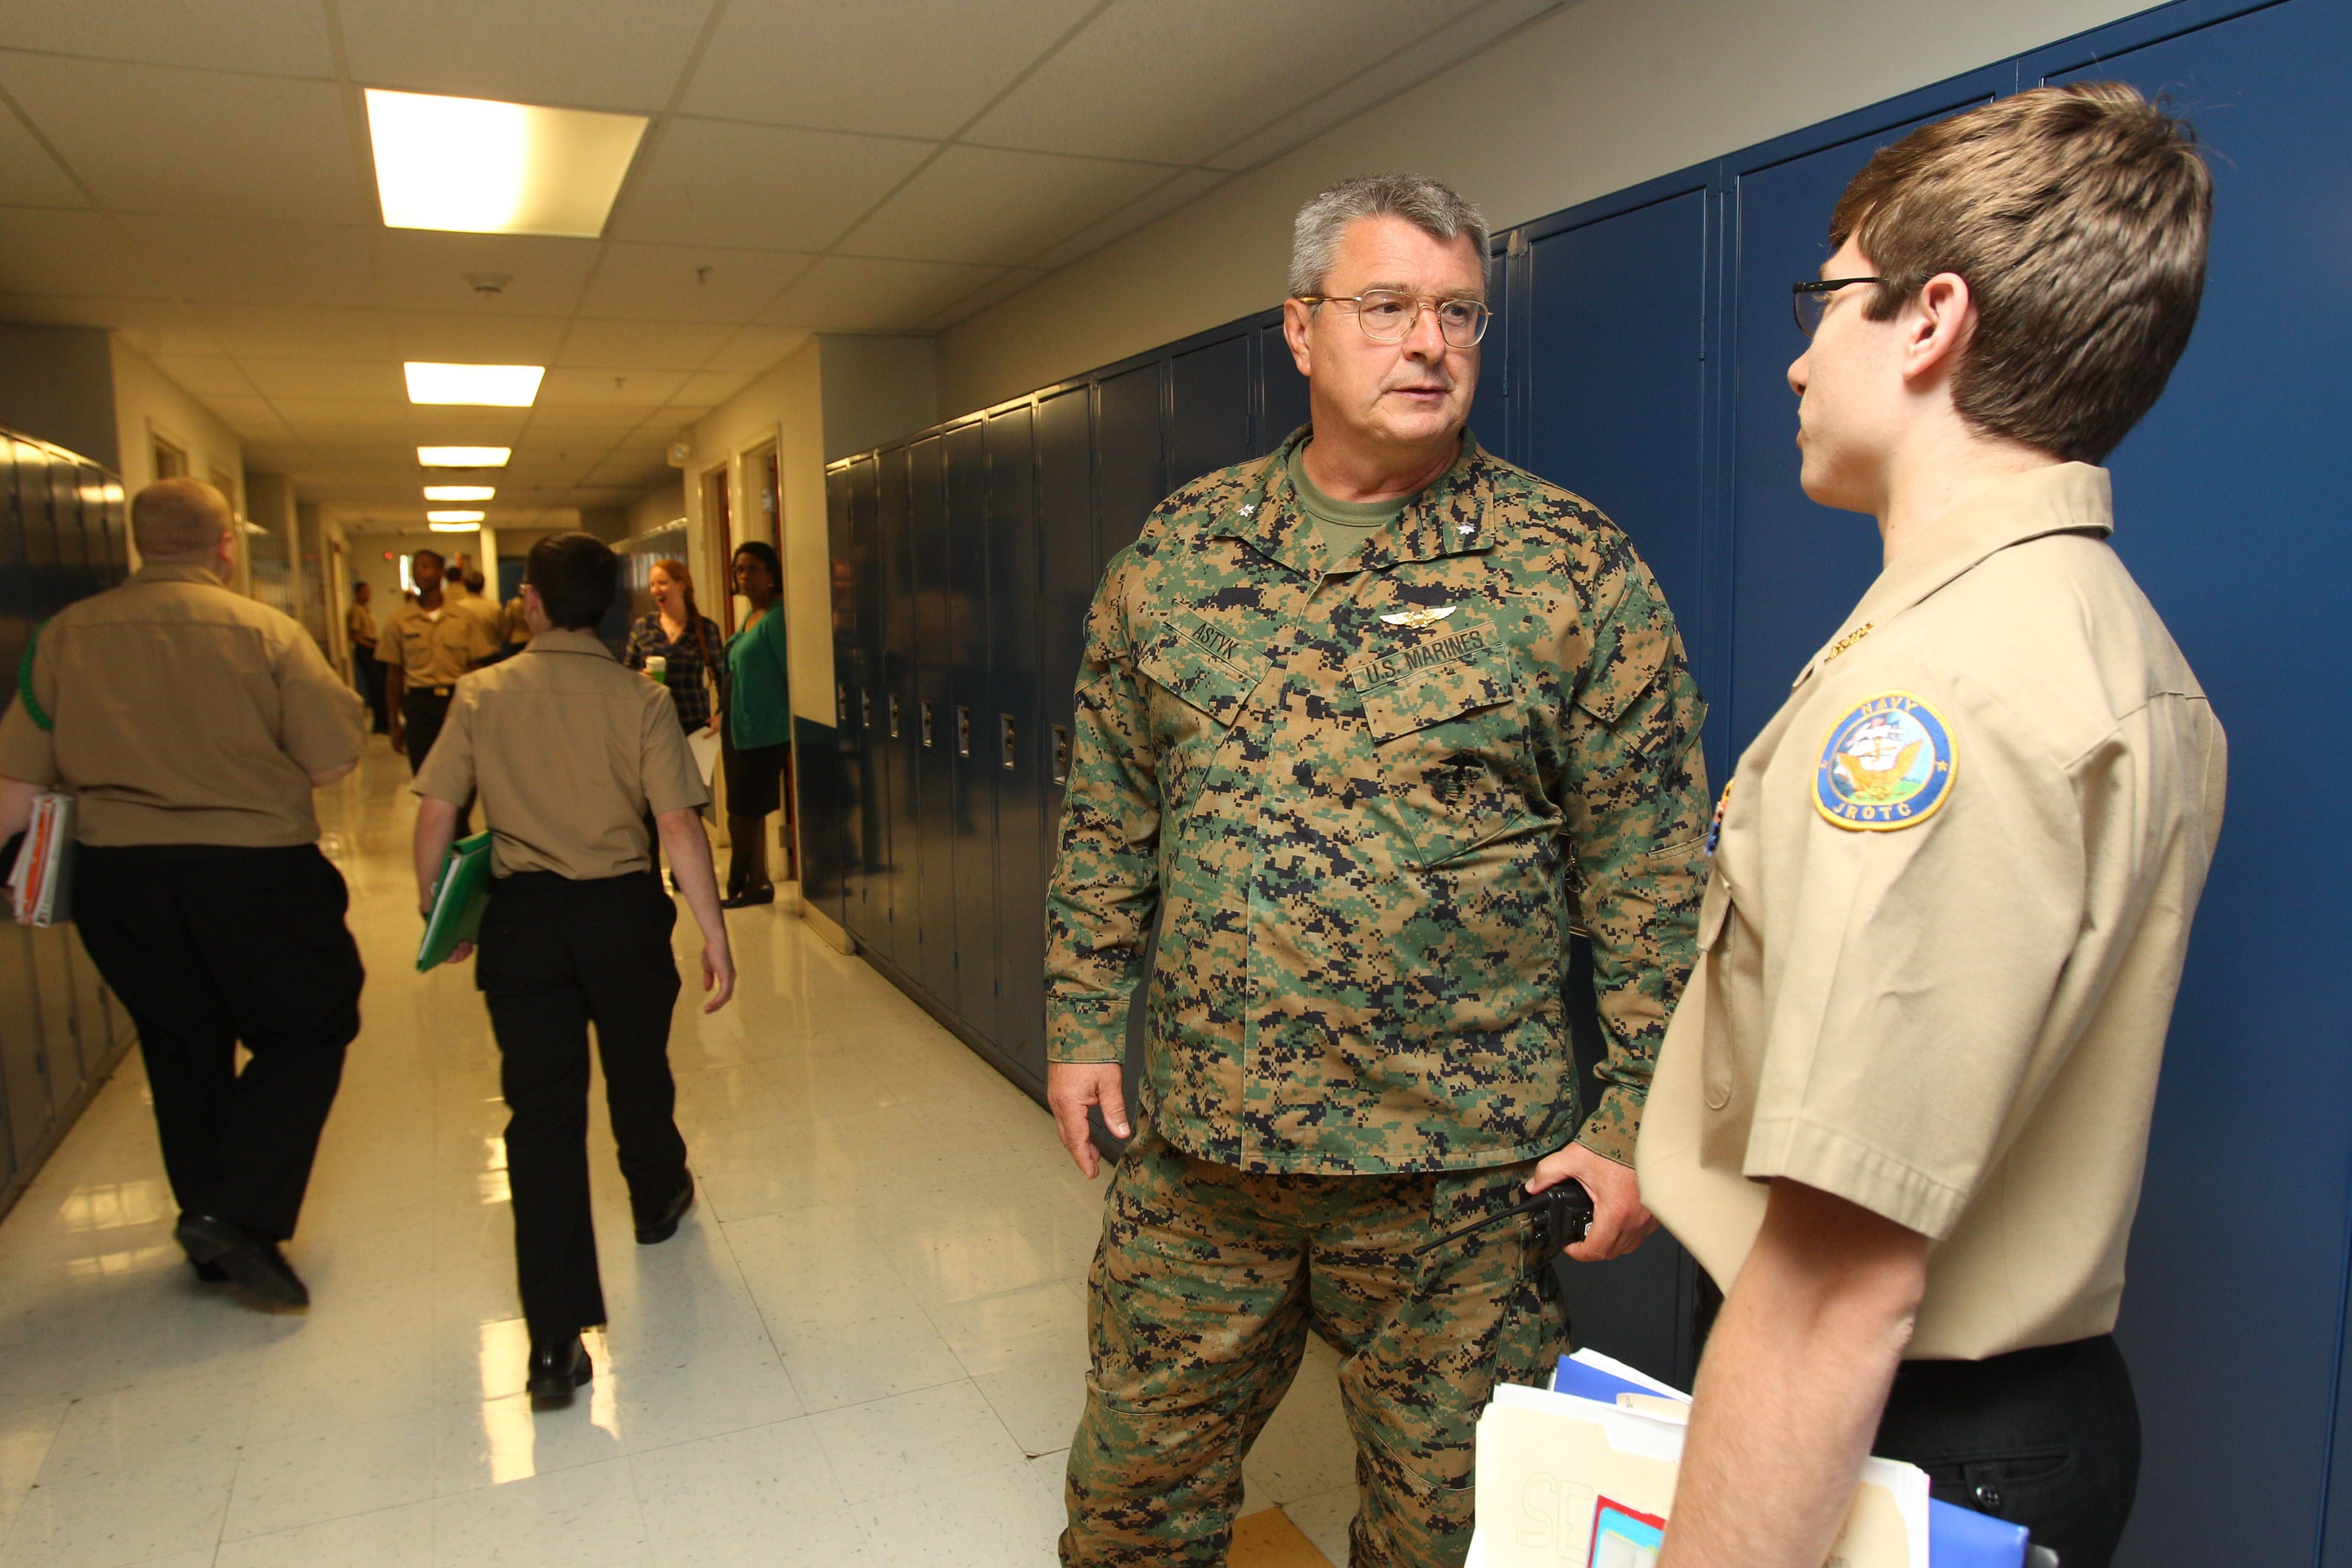 Students in Dawn Krol's math class wear the uniform of the Navy Junior ROTC; seniors wear the school polo and class hoodie. Above, Commandant Lawrence Astyk talks with student Joe Montalbano; below, Spencer Rhyans, left, and Alexis Spikes inspect their shipmates' uniforms as students arrive at school.